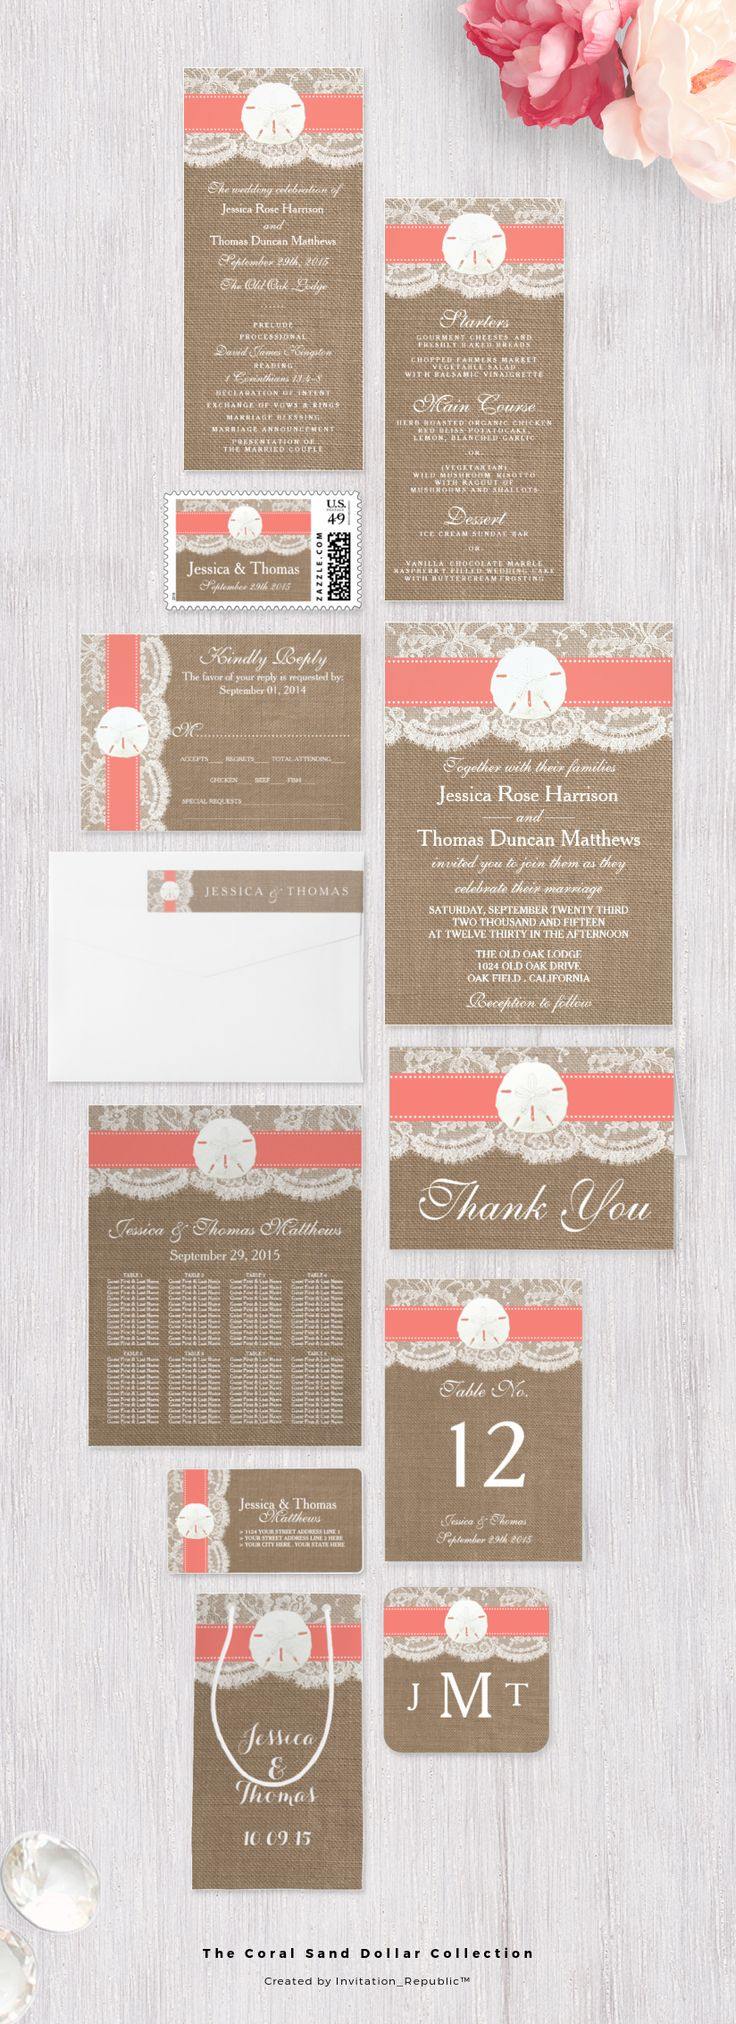 Coral Sand Dollar Beach Wedding Invitation Set Collection   Rustic Lace and Burlap